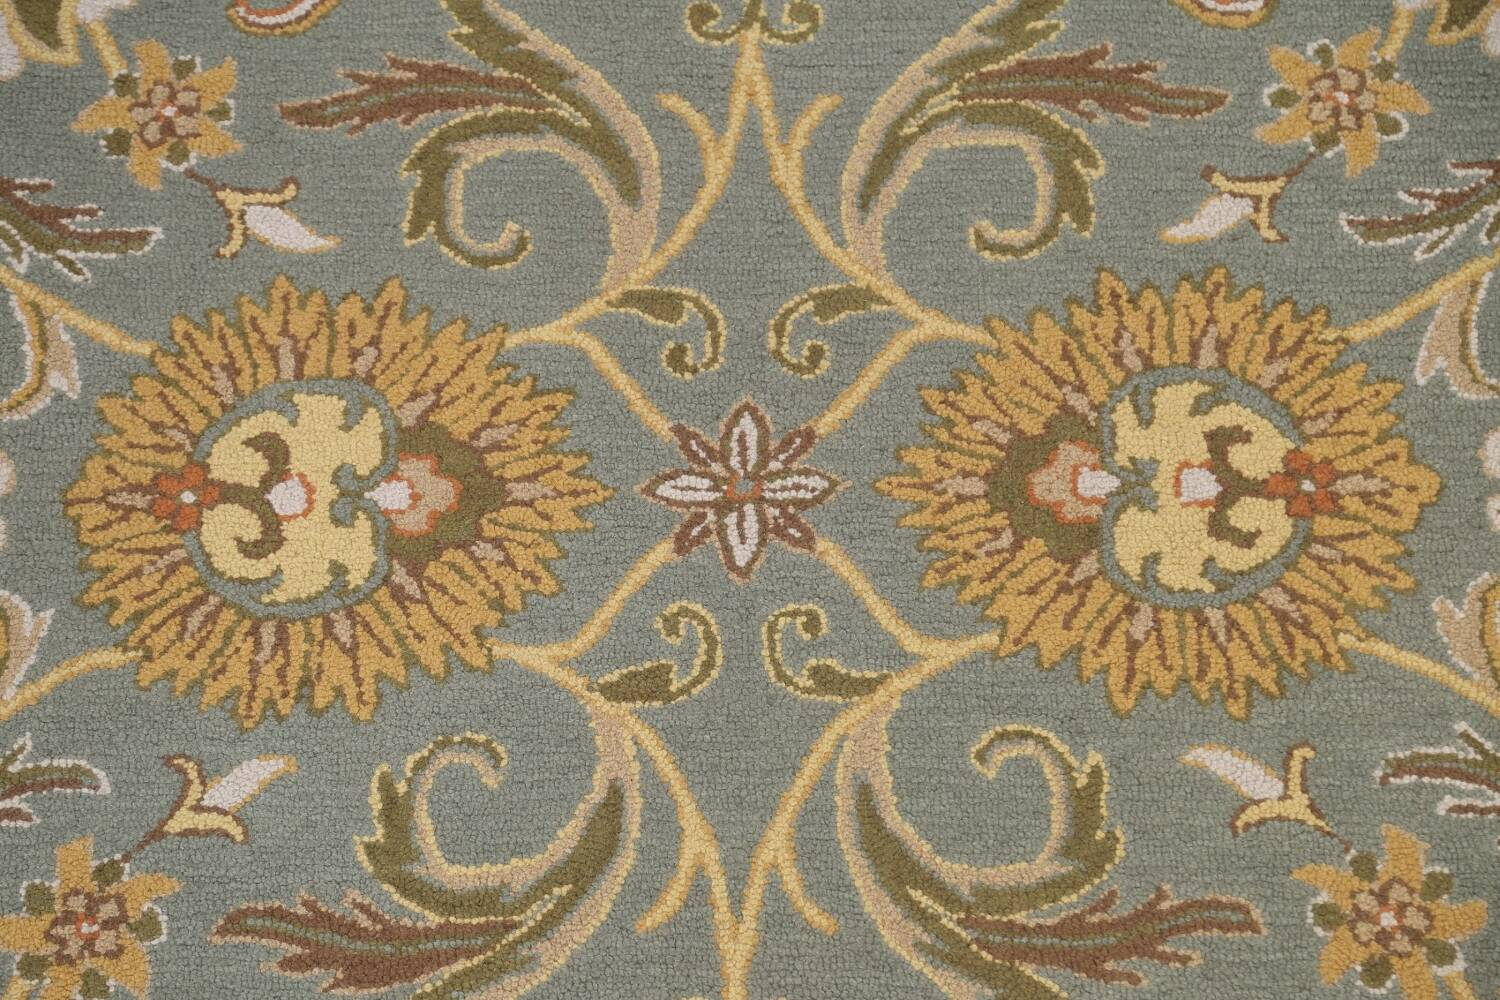 Hand-Tufted Floral Agra Area Rug 5x8 image 4